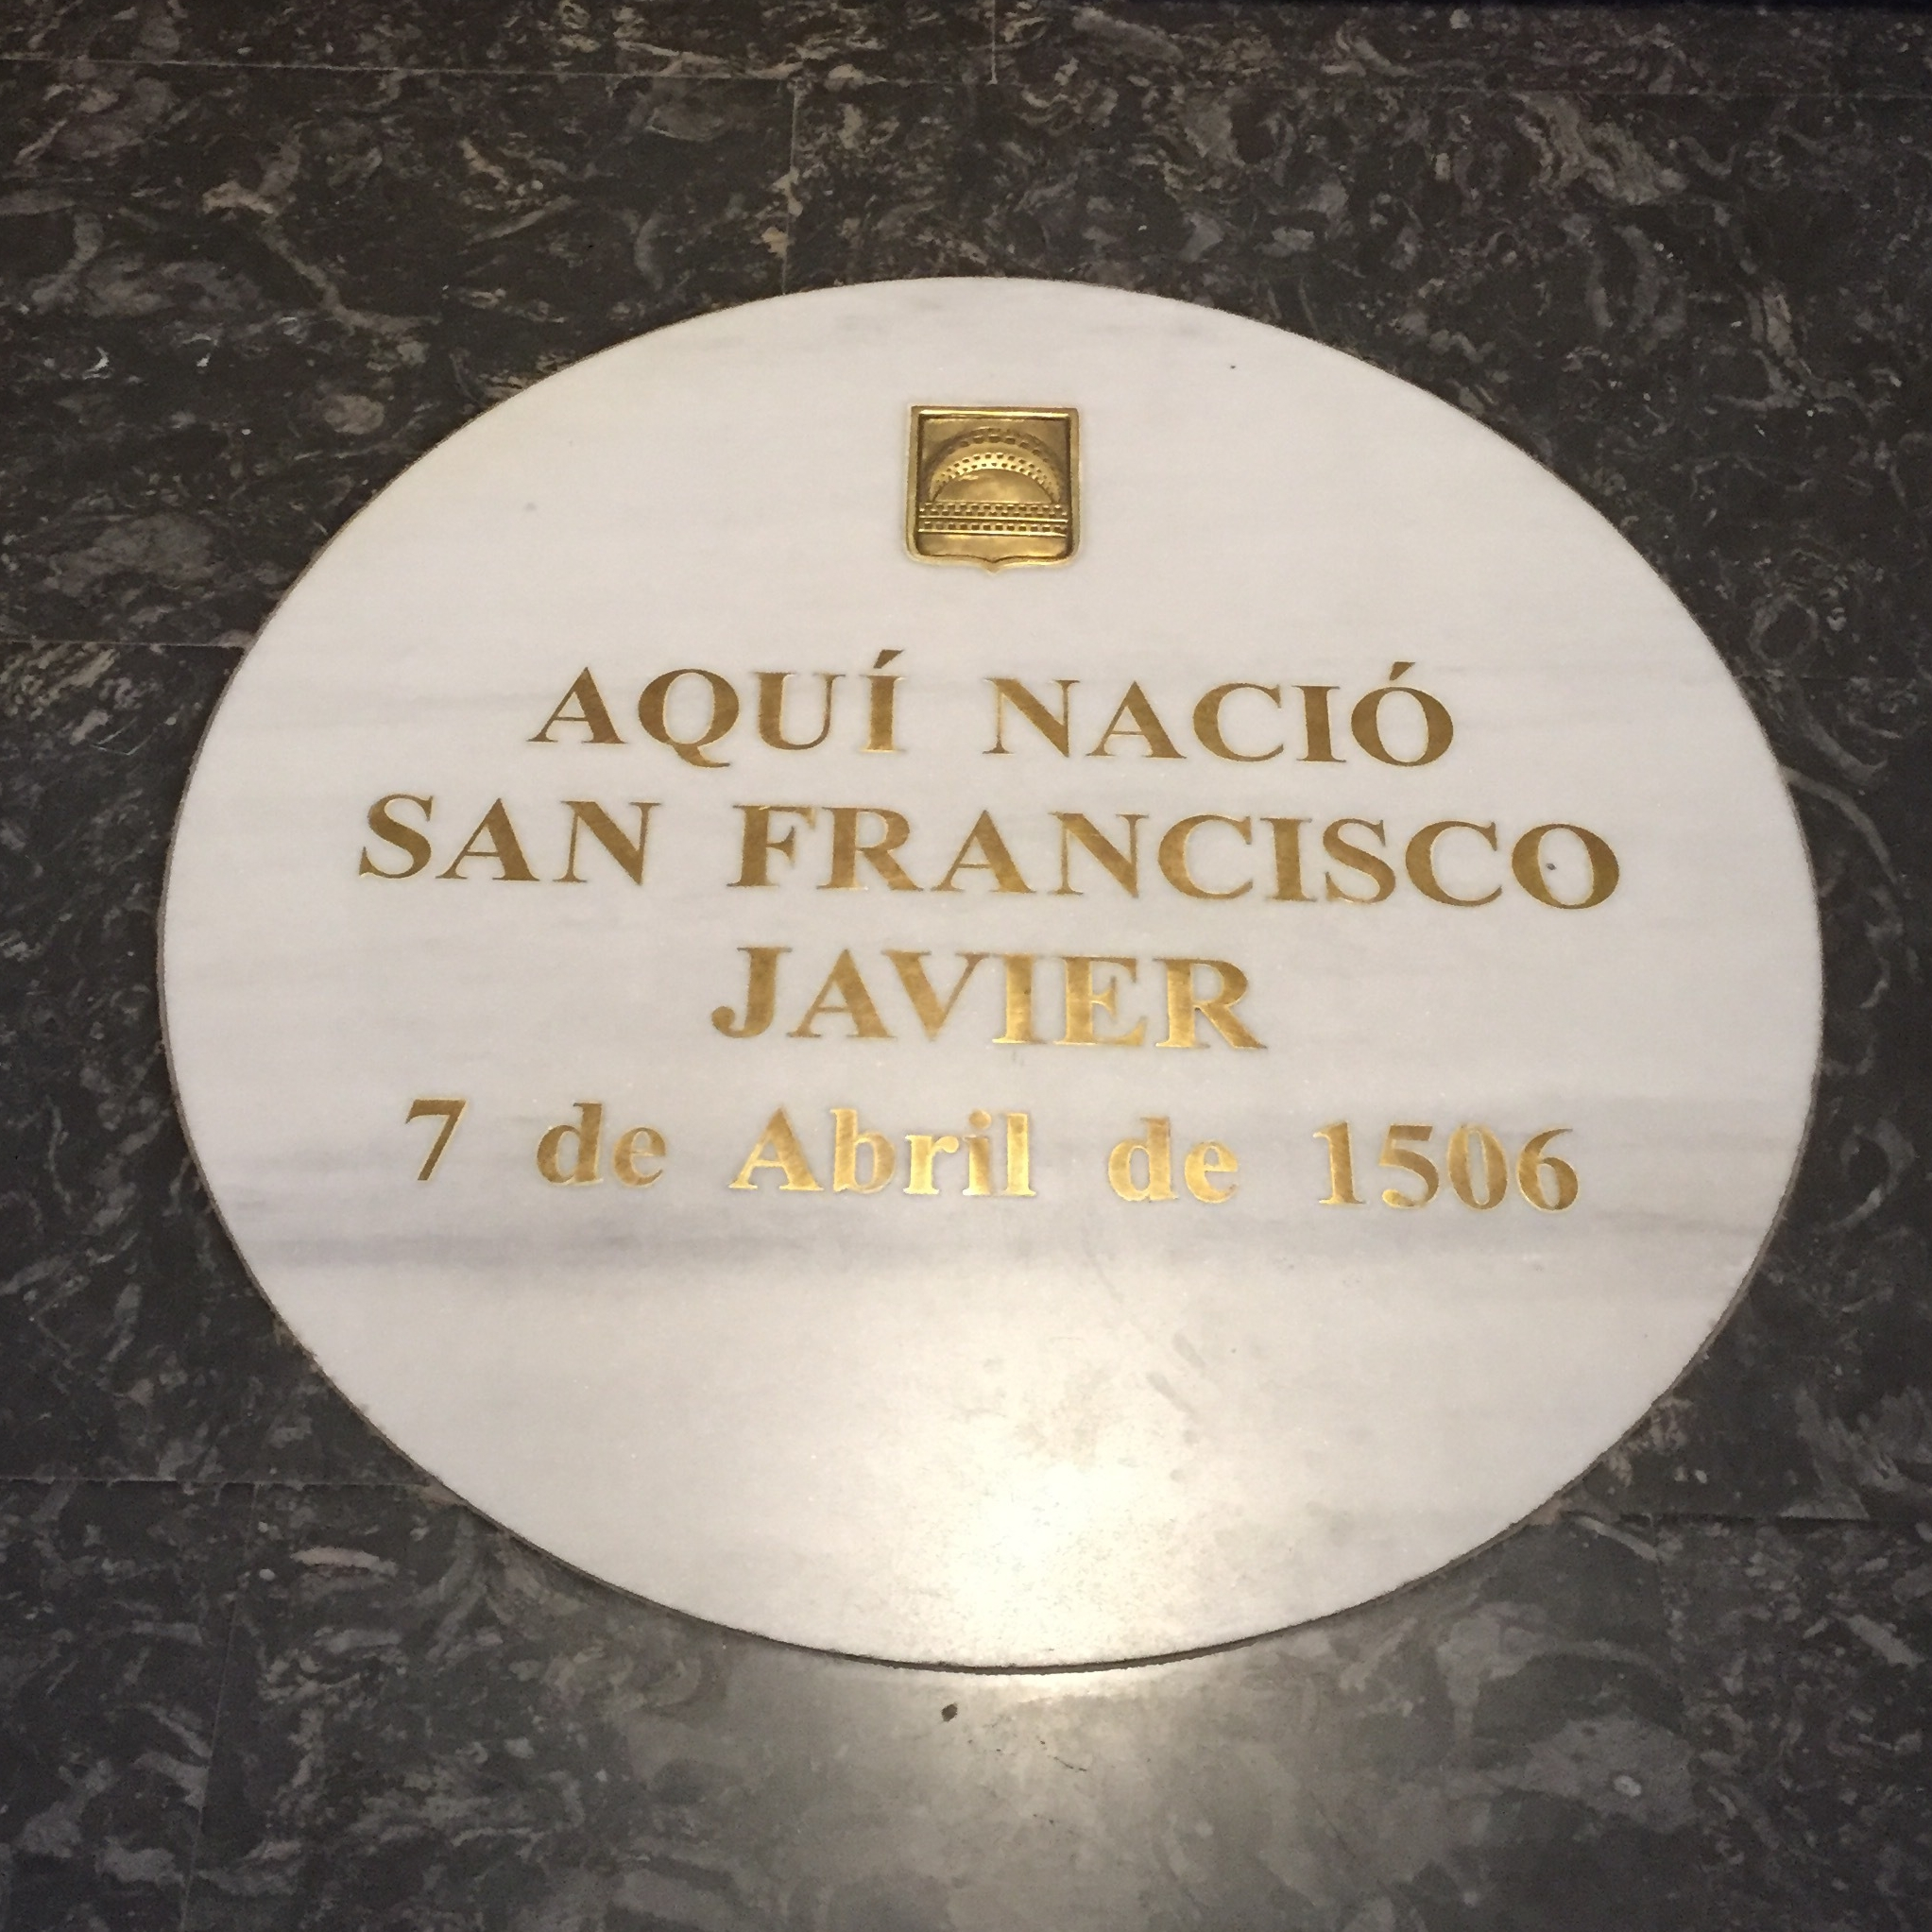 During their pilgrimage, the group visited the birthplace of St. Francis Xavier (photo courtesy of Loyola University Maryland)